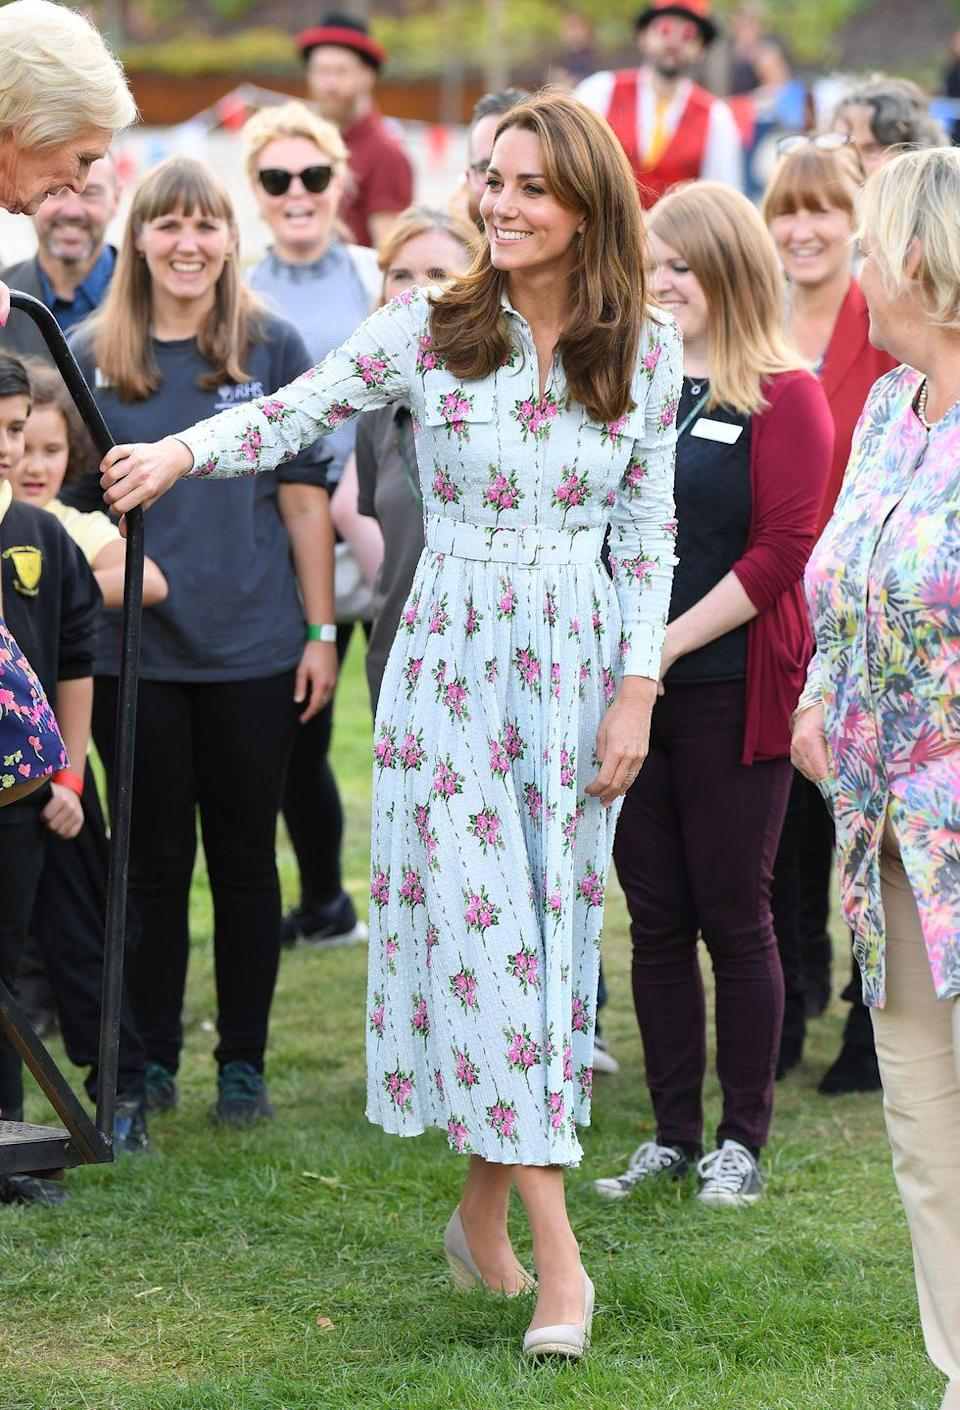 "<p>The Duchess stunned in <a href=""https://www.townandcountrymag.com/style/fashion-trends/a28965273/kate-middleton-floral-emilia-wickstead-back-natural-play-garden-photos/"" rel=""nofollow noopener"" target=""_blank"" data-ylk=""slk:a floral Emilia Wickstead dress"" class=""link rapid-noclick-resp"">a floral Emilia Wickstead dress</a> for a surprise appearance at the ""Back to Nature"" festival in Wisley. She paired the breezy dress with nude wedges.</p>"